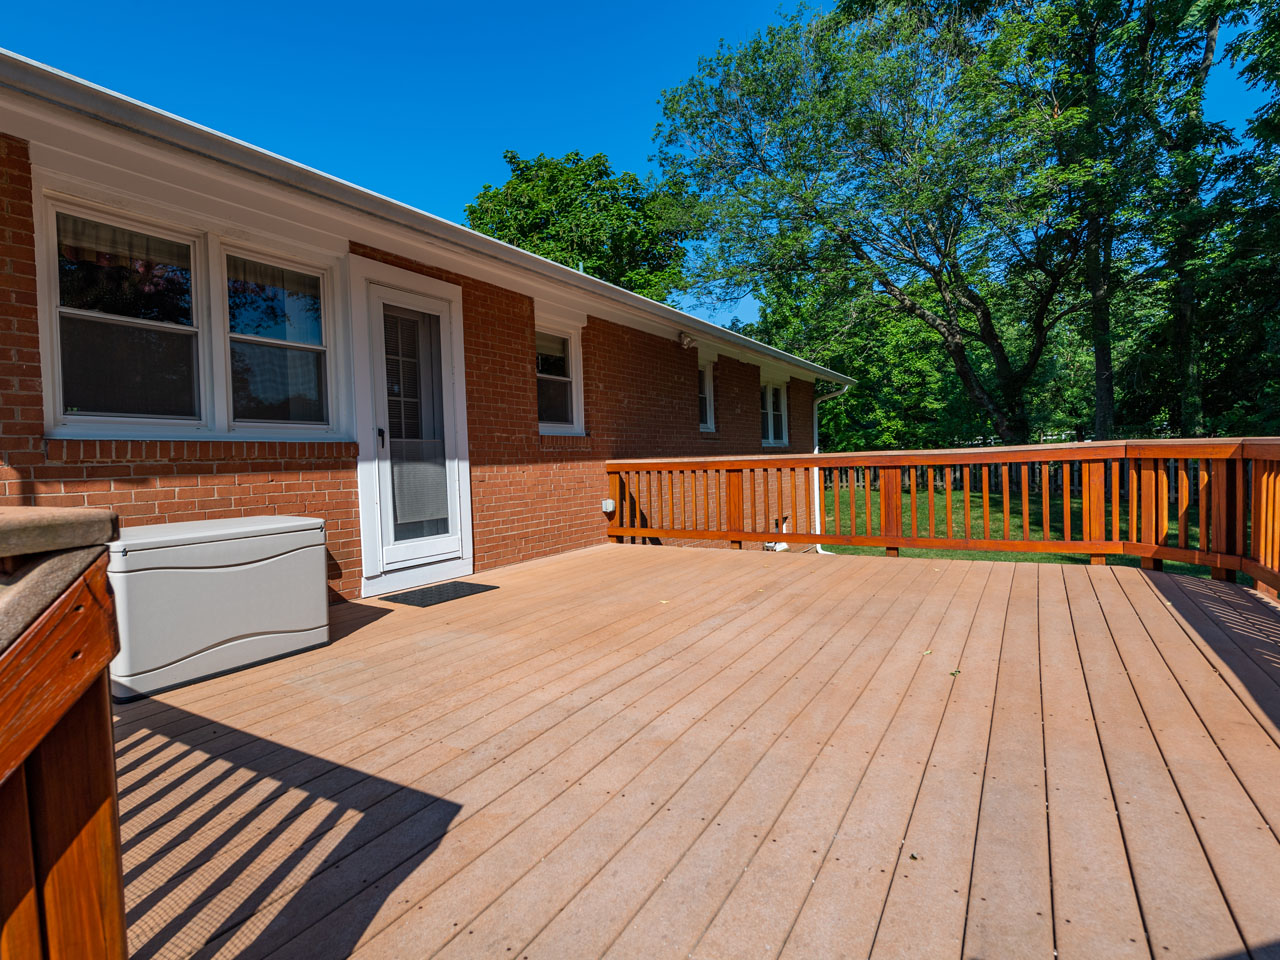 3641_deck-1  |   | Alexandria Delaware Real Estate For Sale | MLS# Vafx1076330  - Best of Northern Virginia